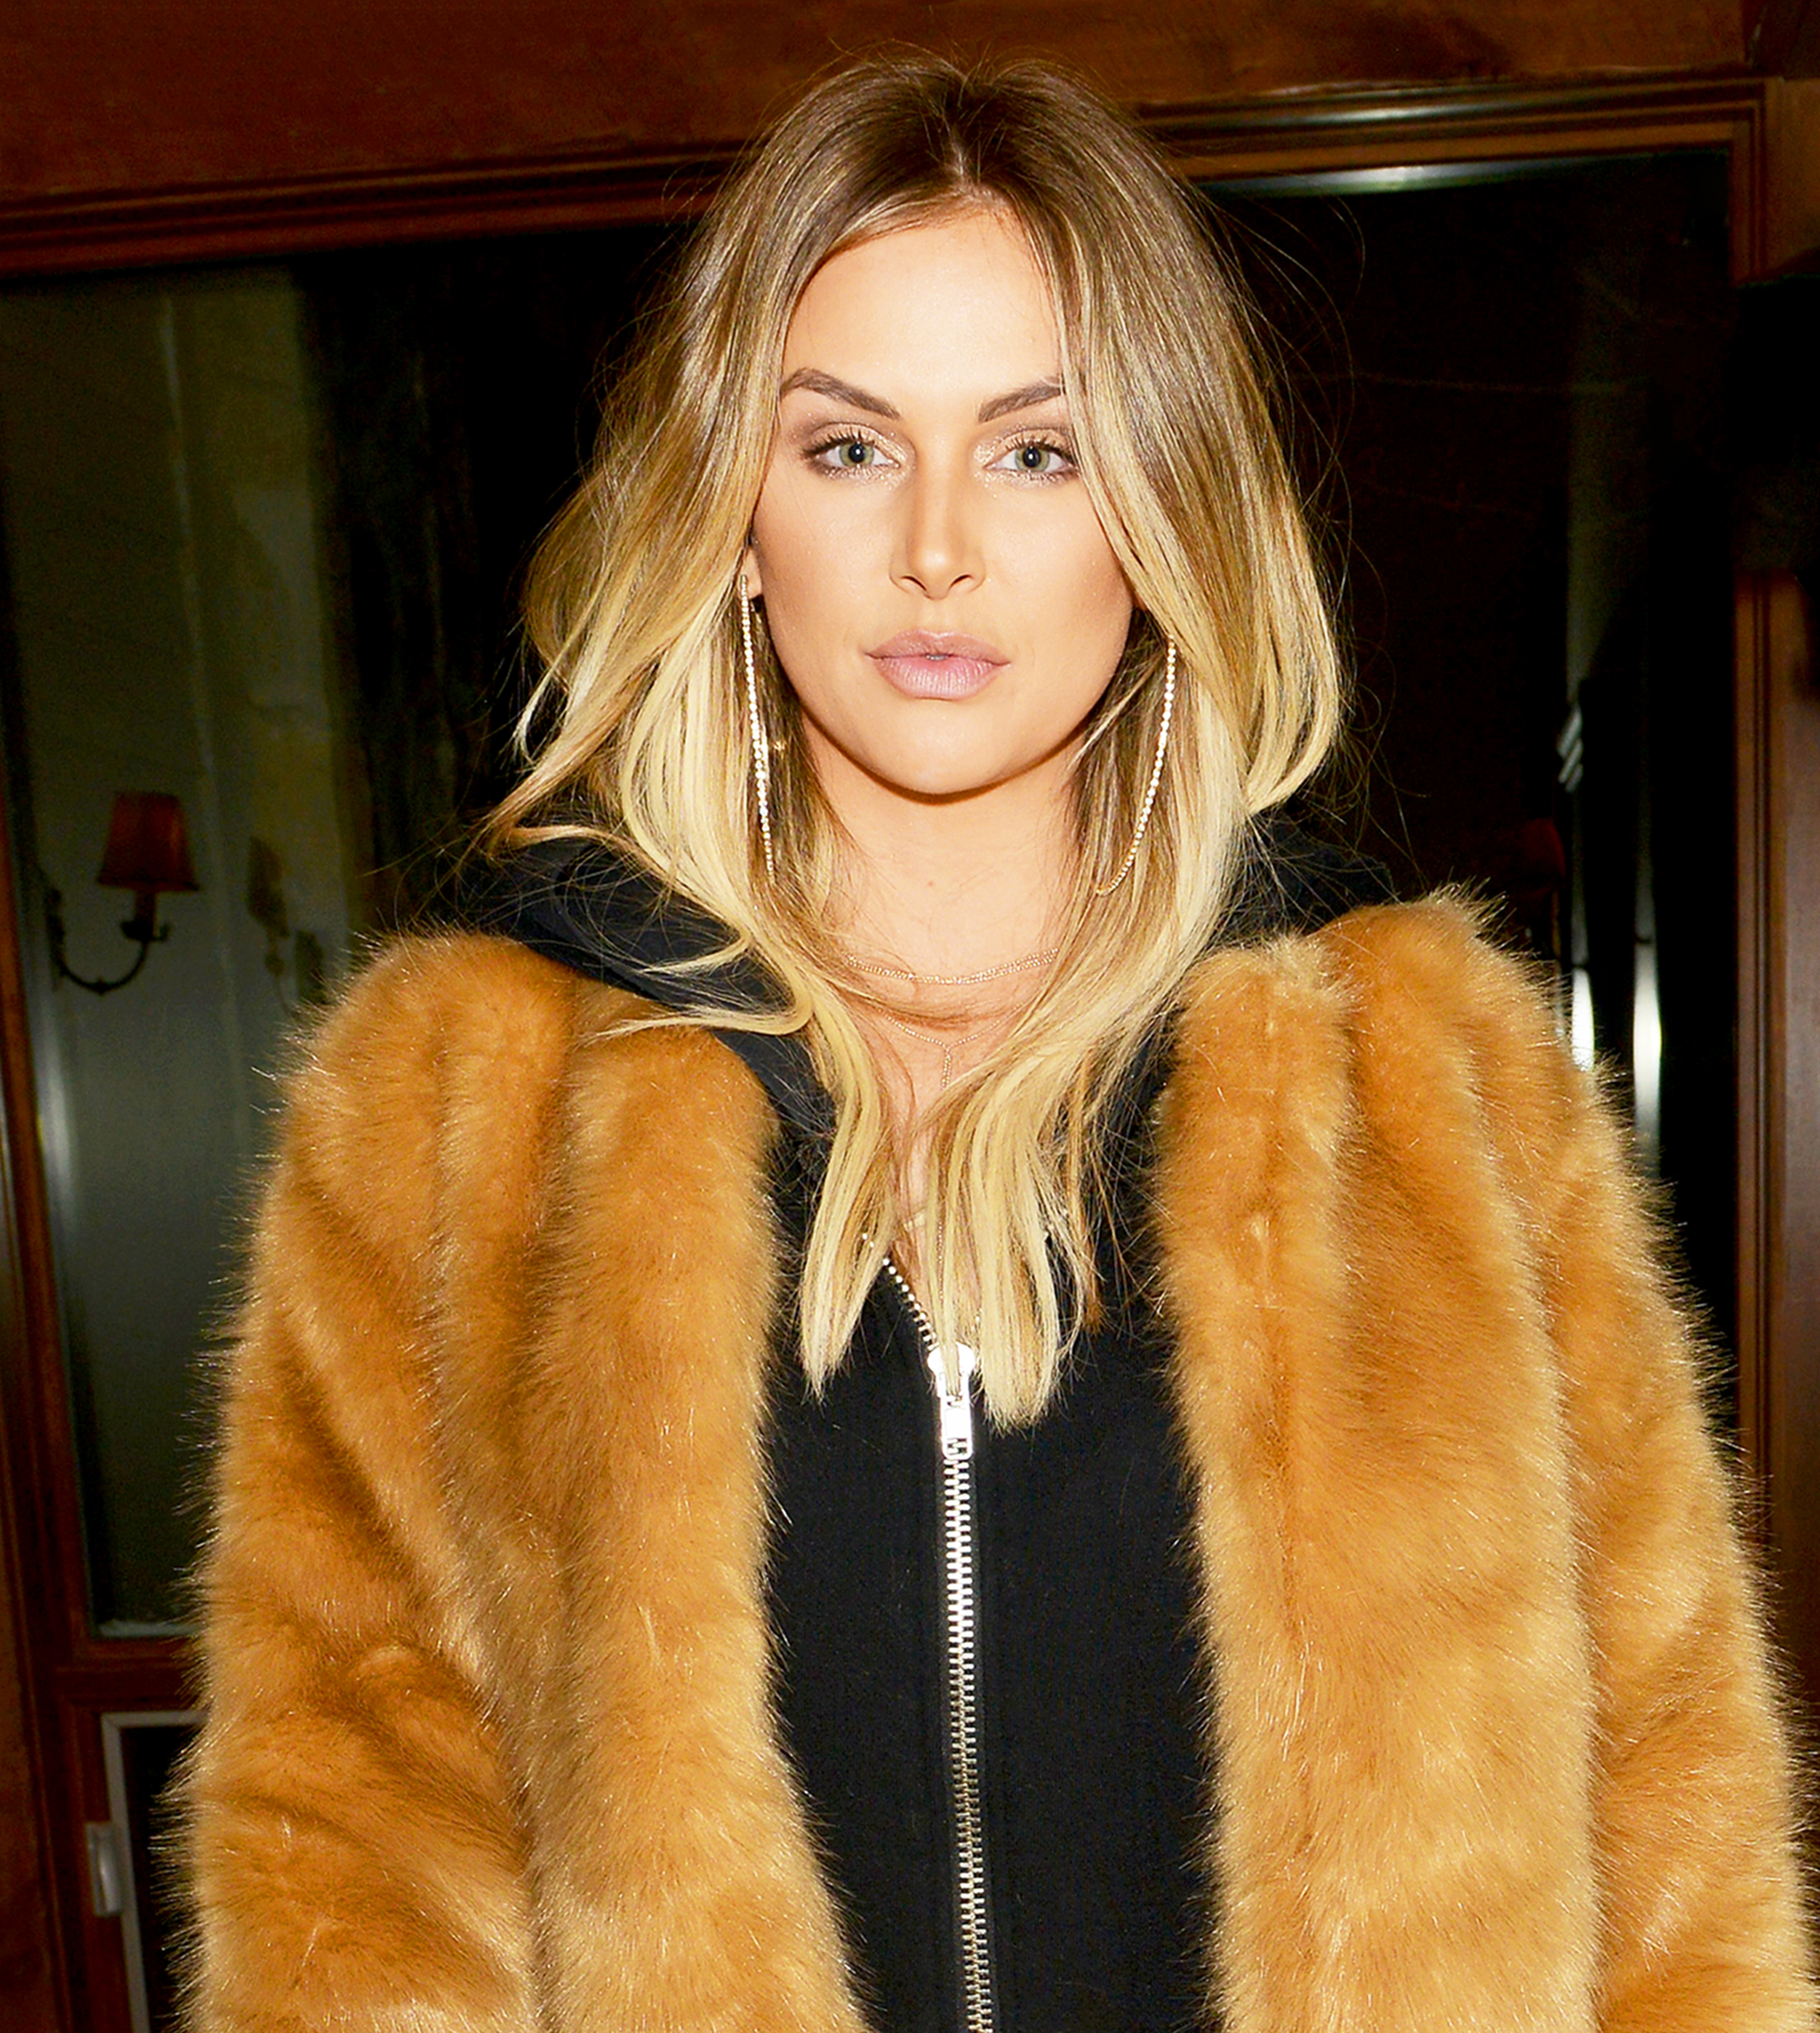 Lala Kent mourning sudden loss of dad